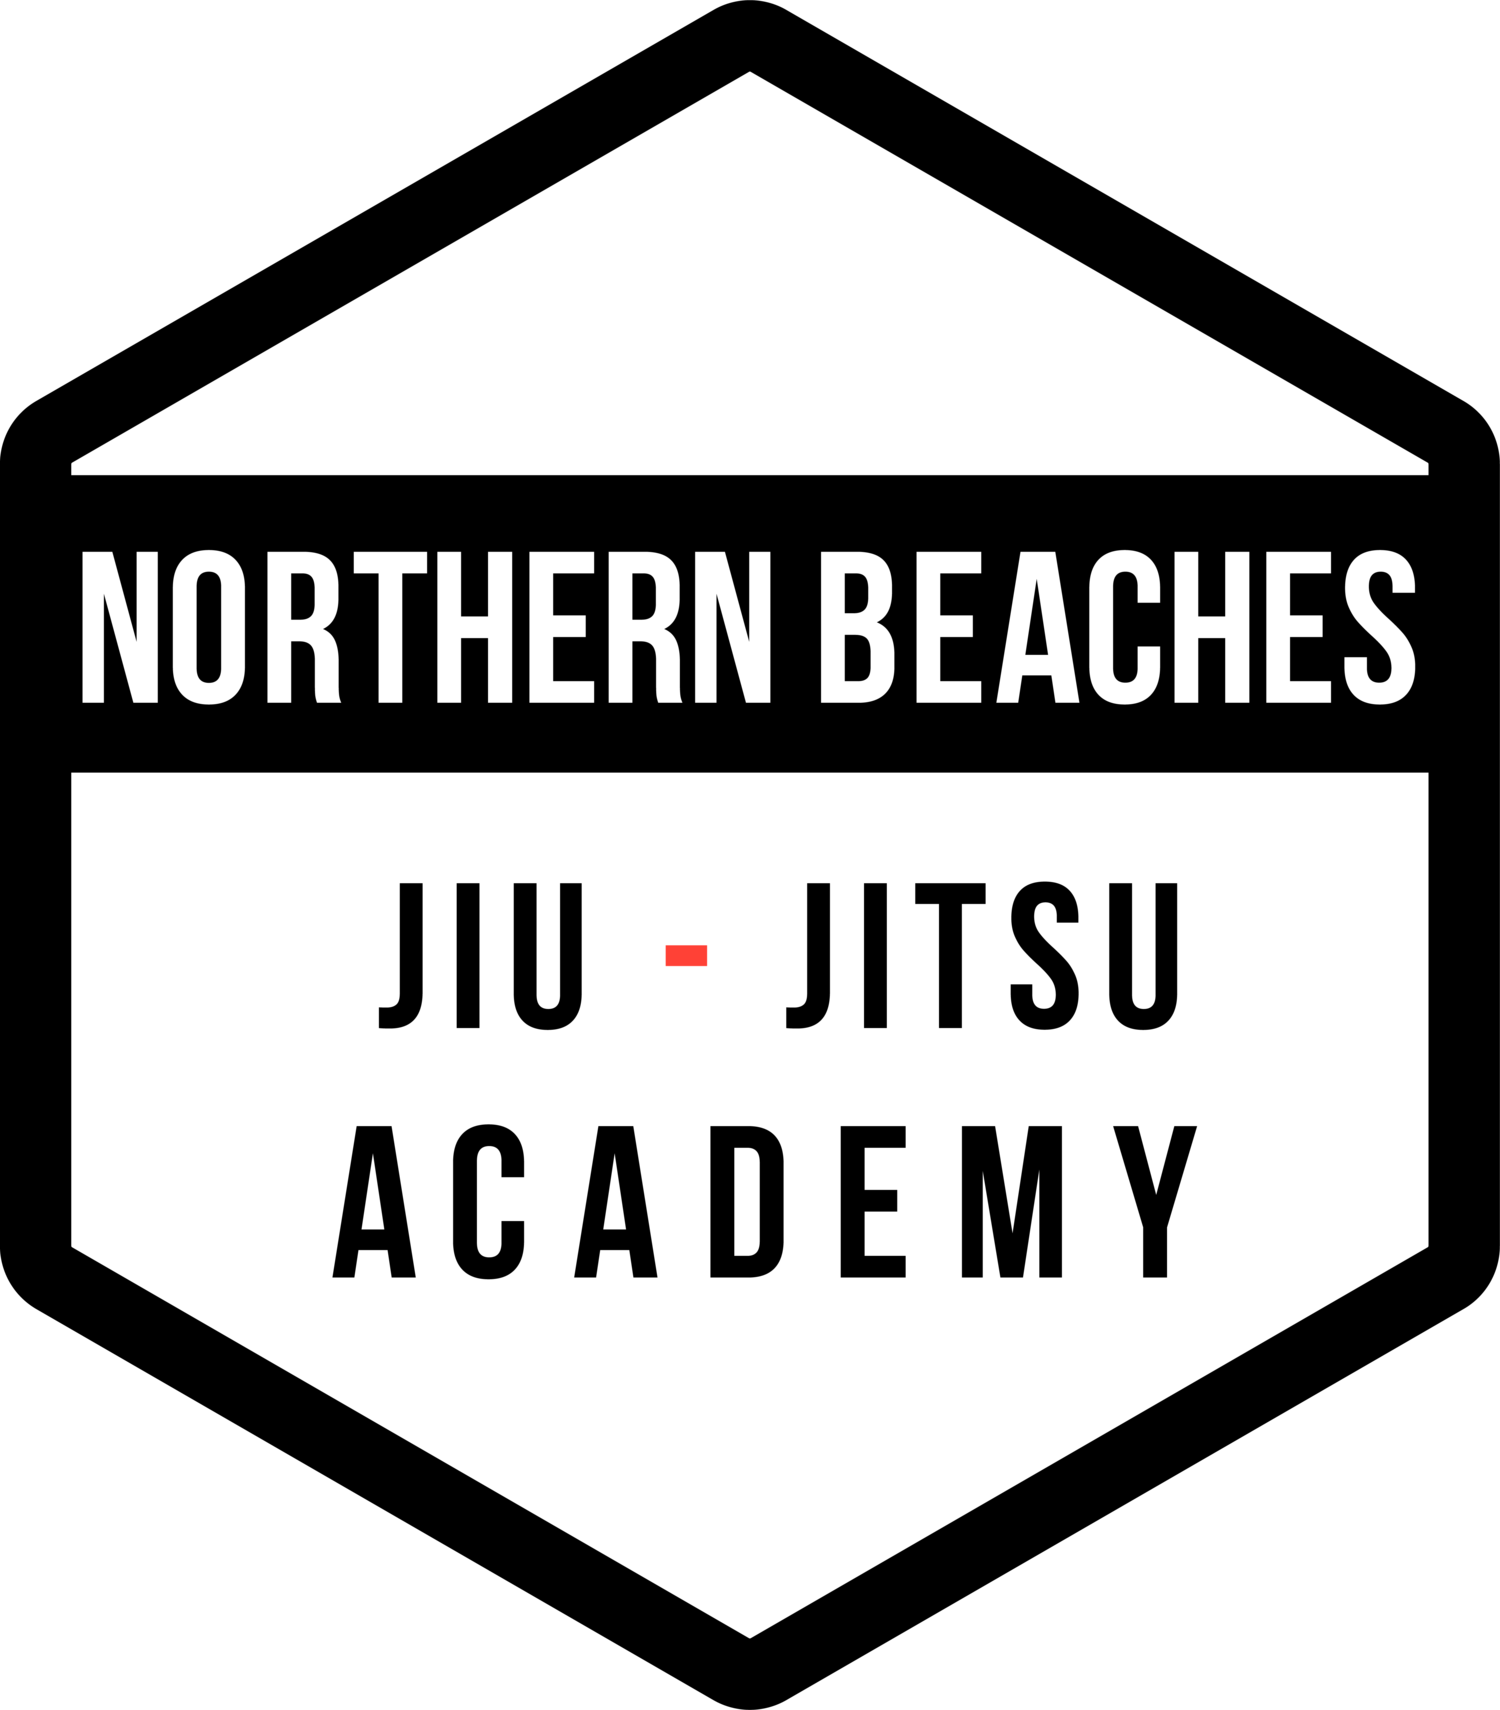 Northern Beaches Jiu Jitsu Academy